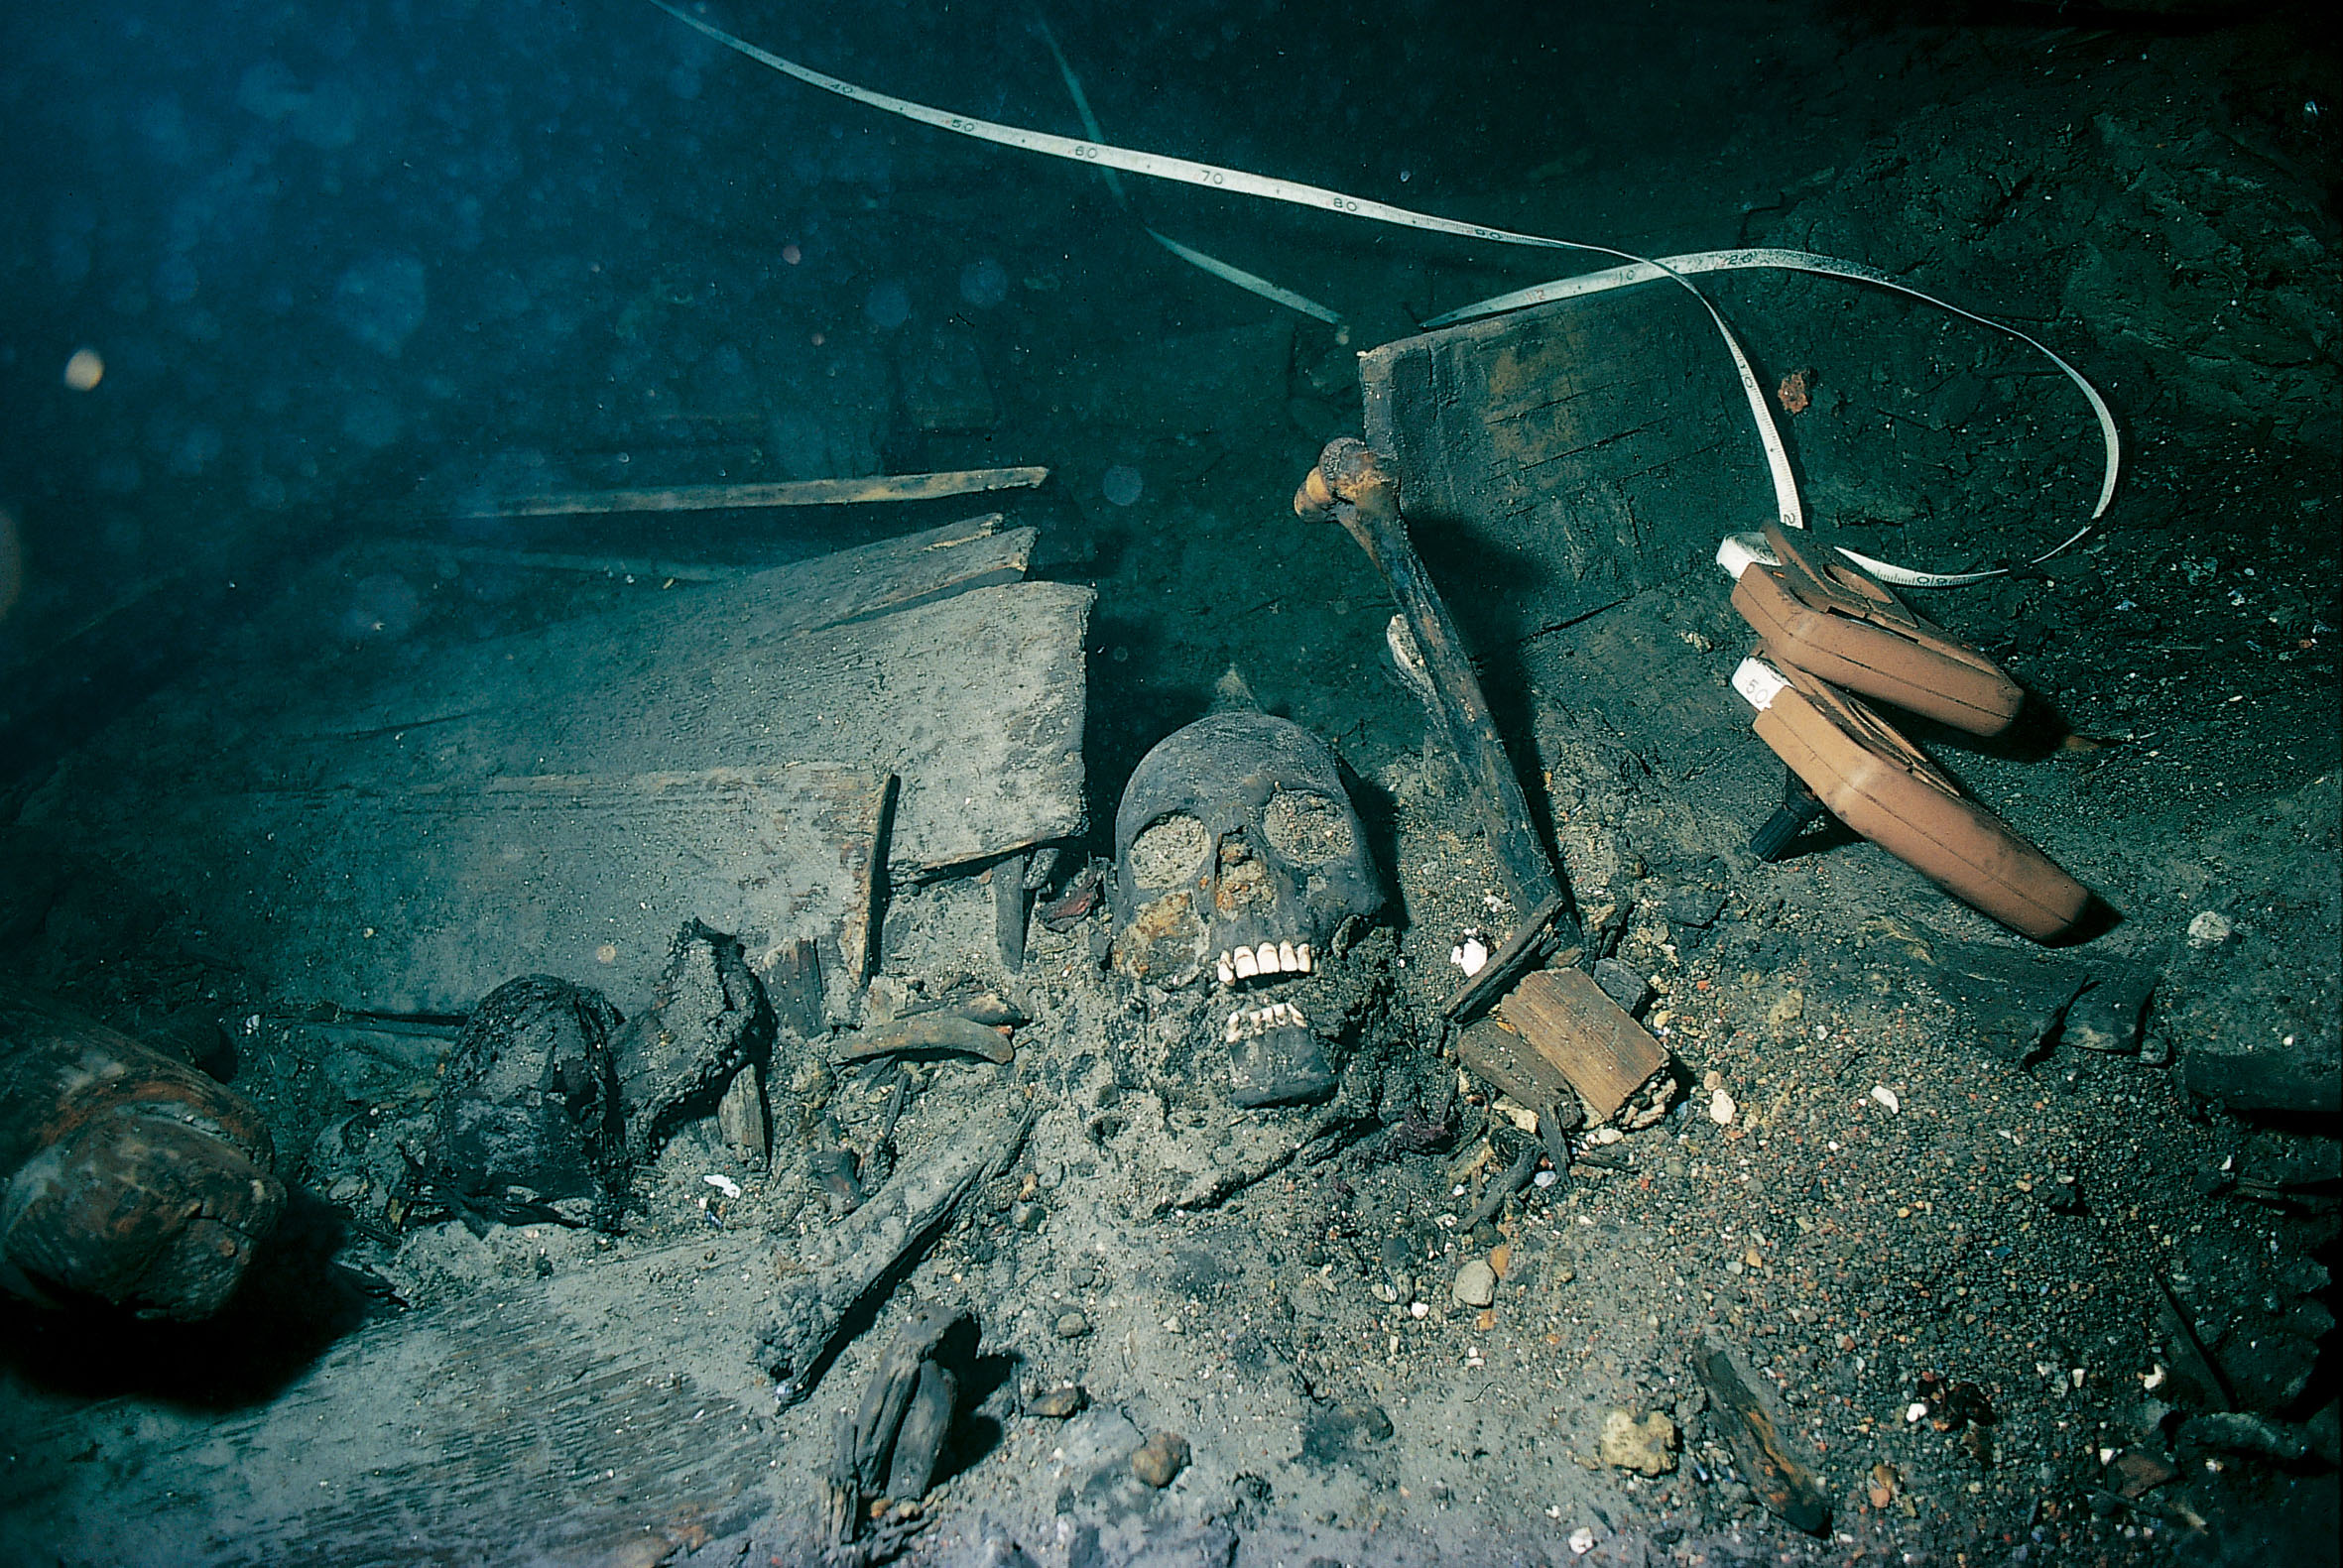 Uss Arizona Human Remains Titanic Underwater Hum...